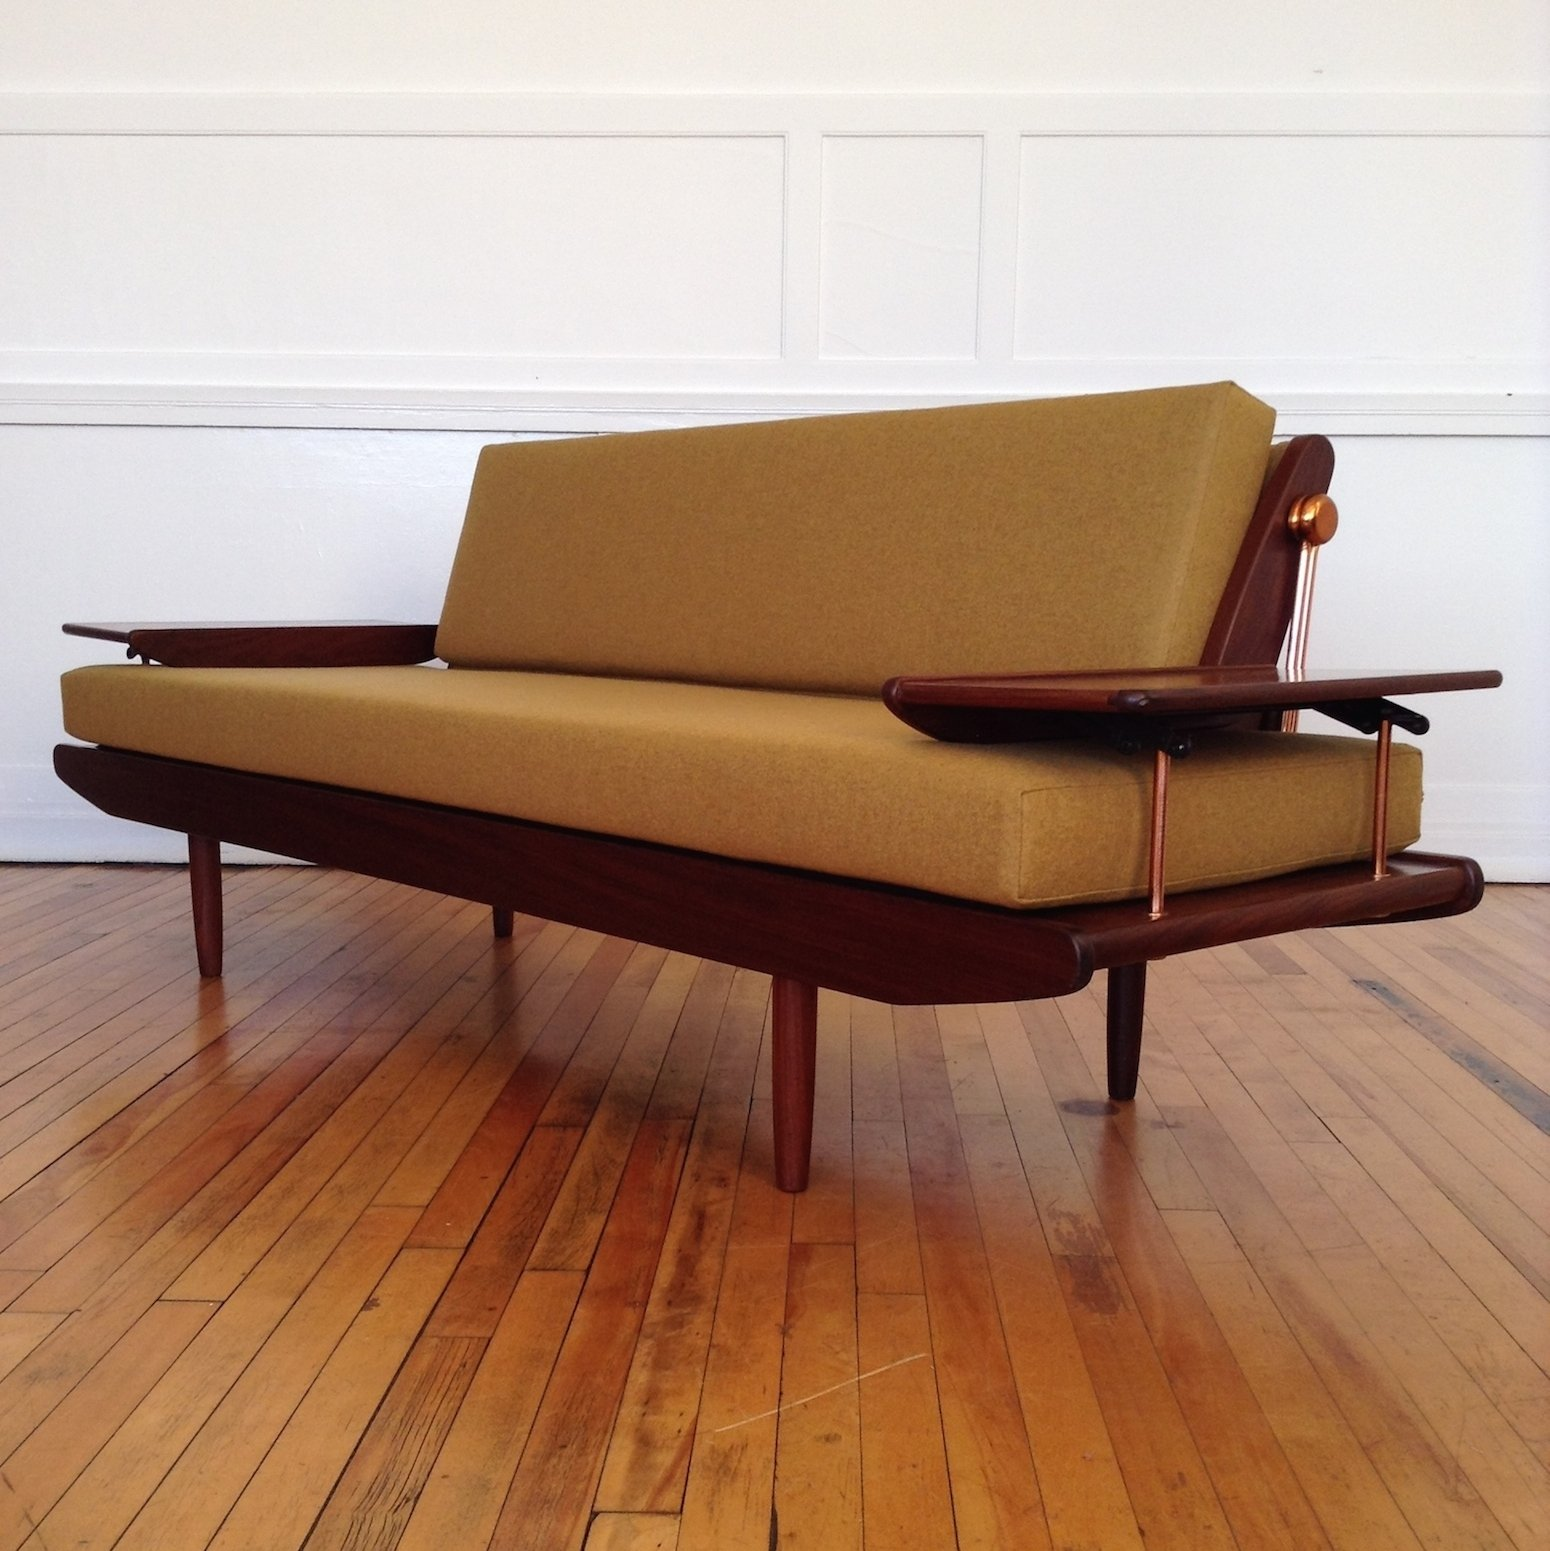 Midcentury British Sofa Bed By Toothill In Lambswool 1960s